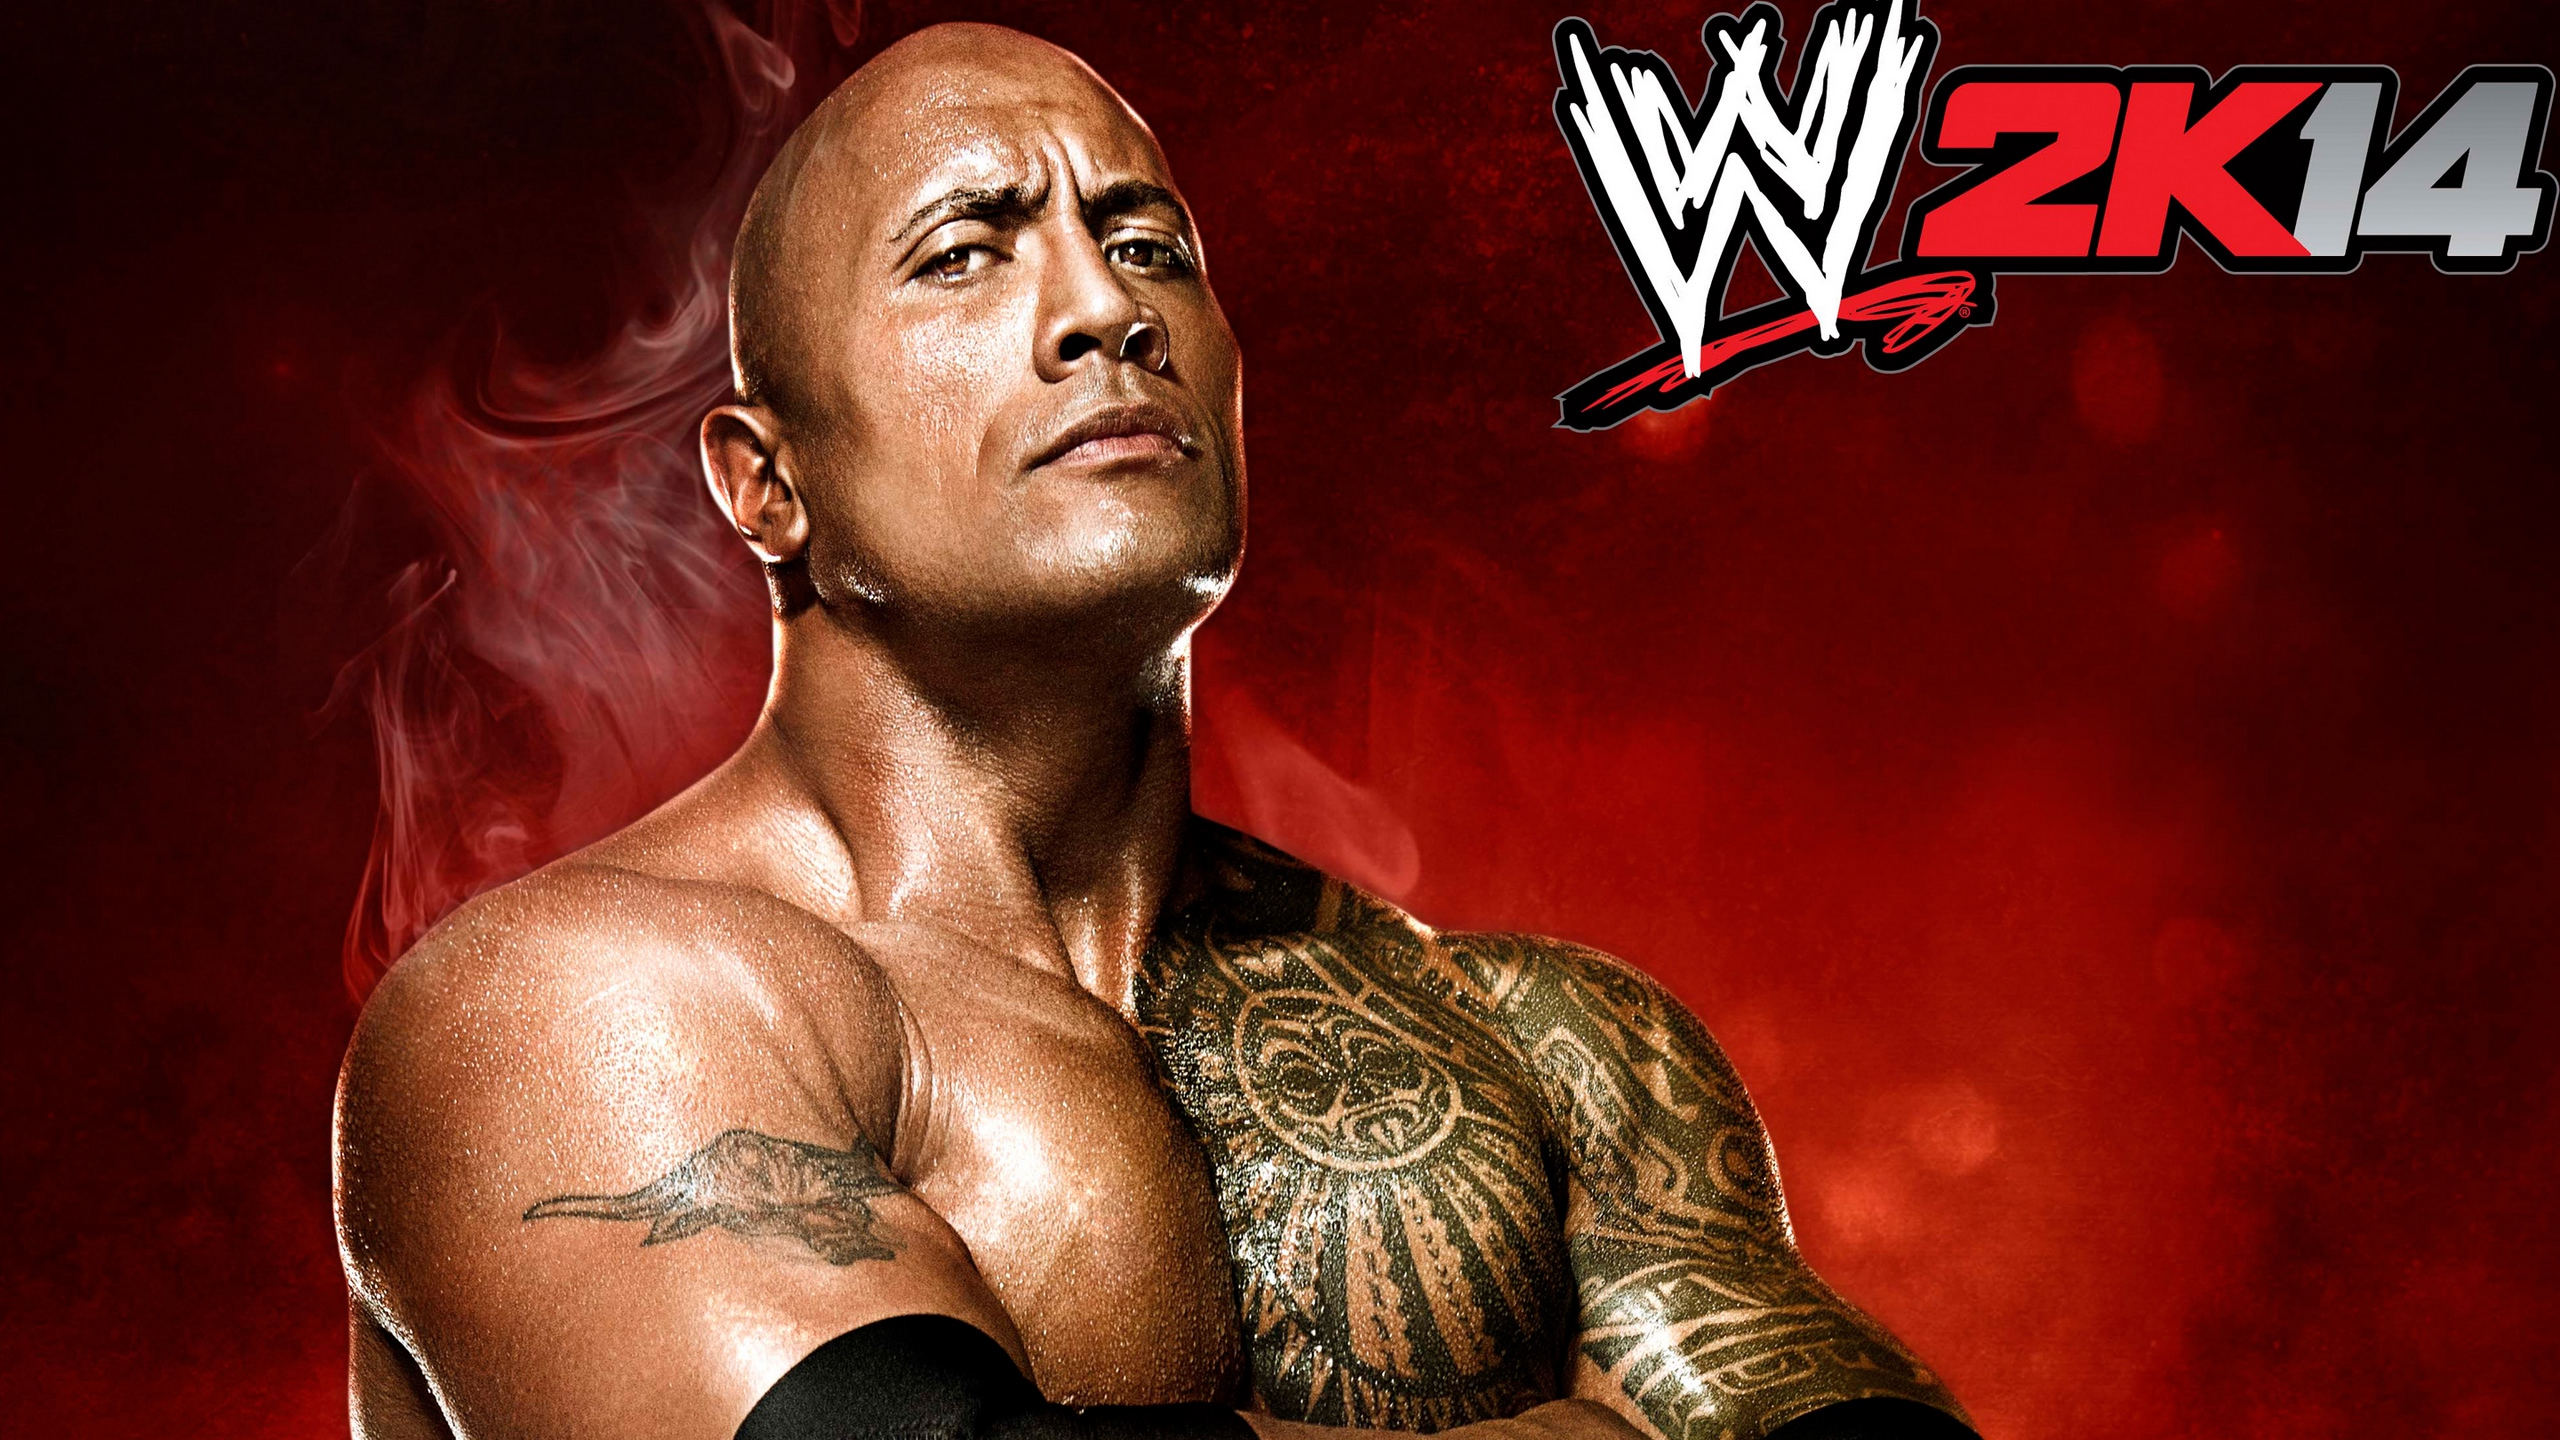 Wwe Wrestling Wallpapers Posted By Ethan Cunningham